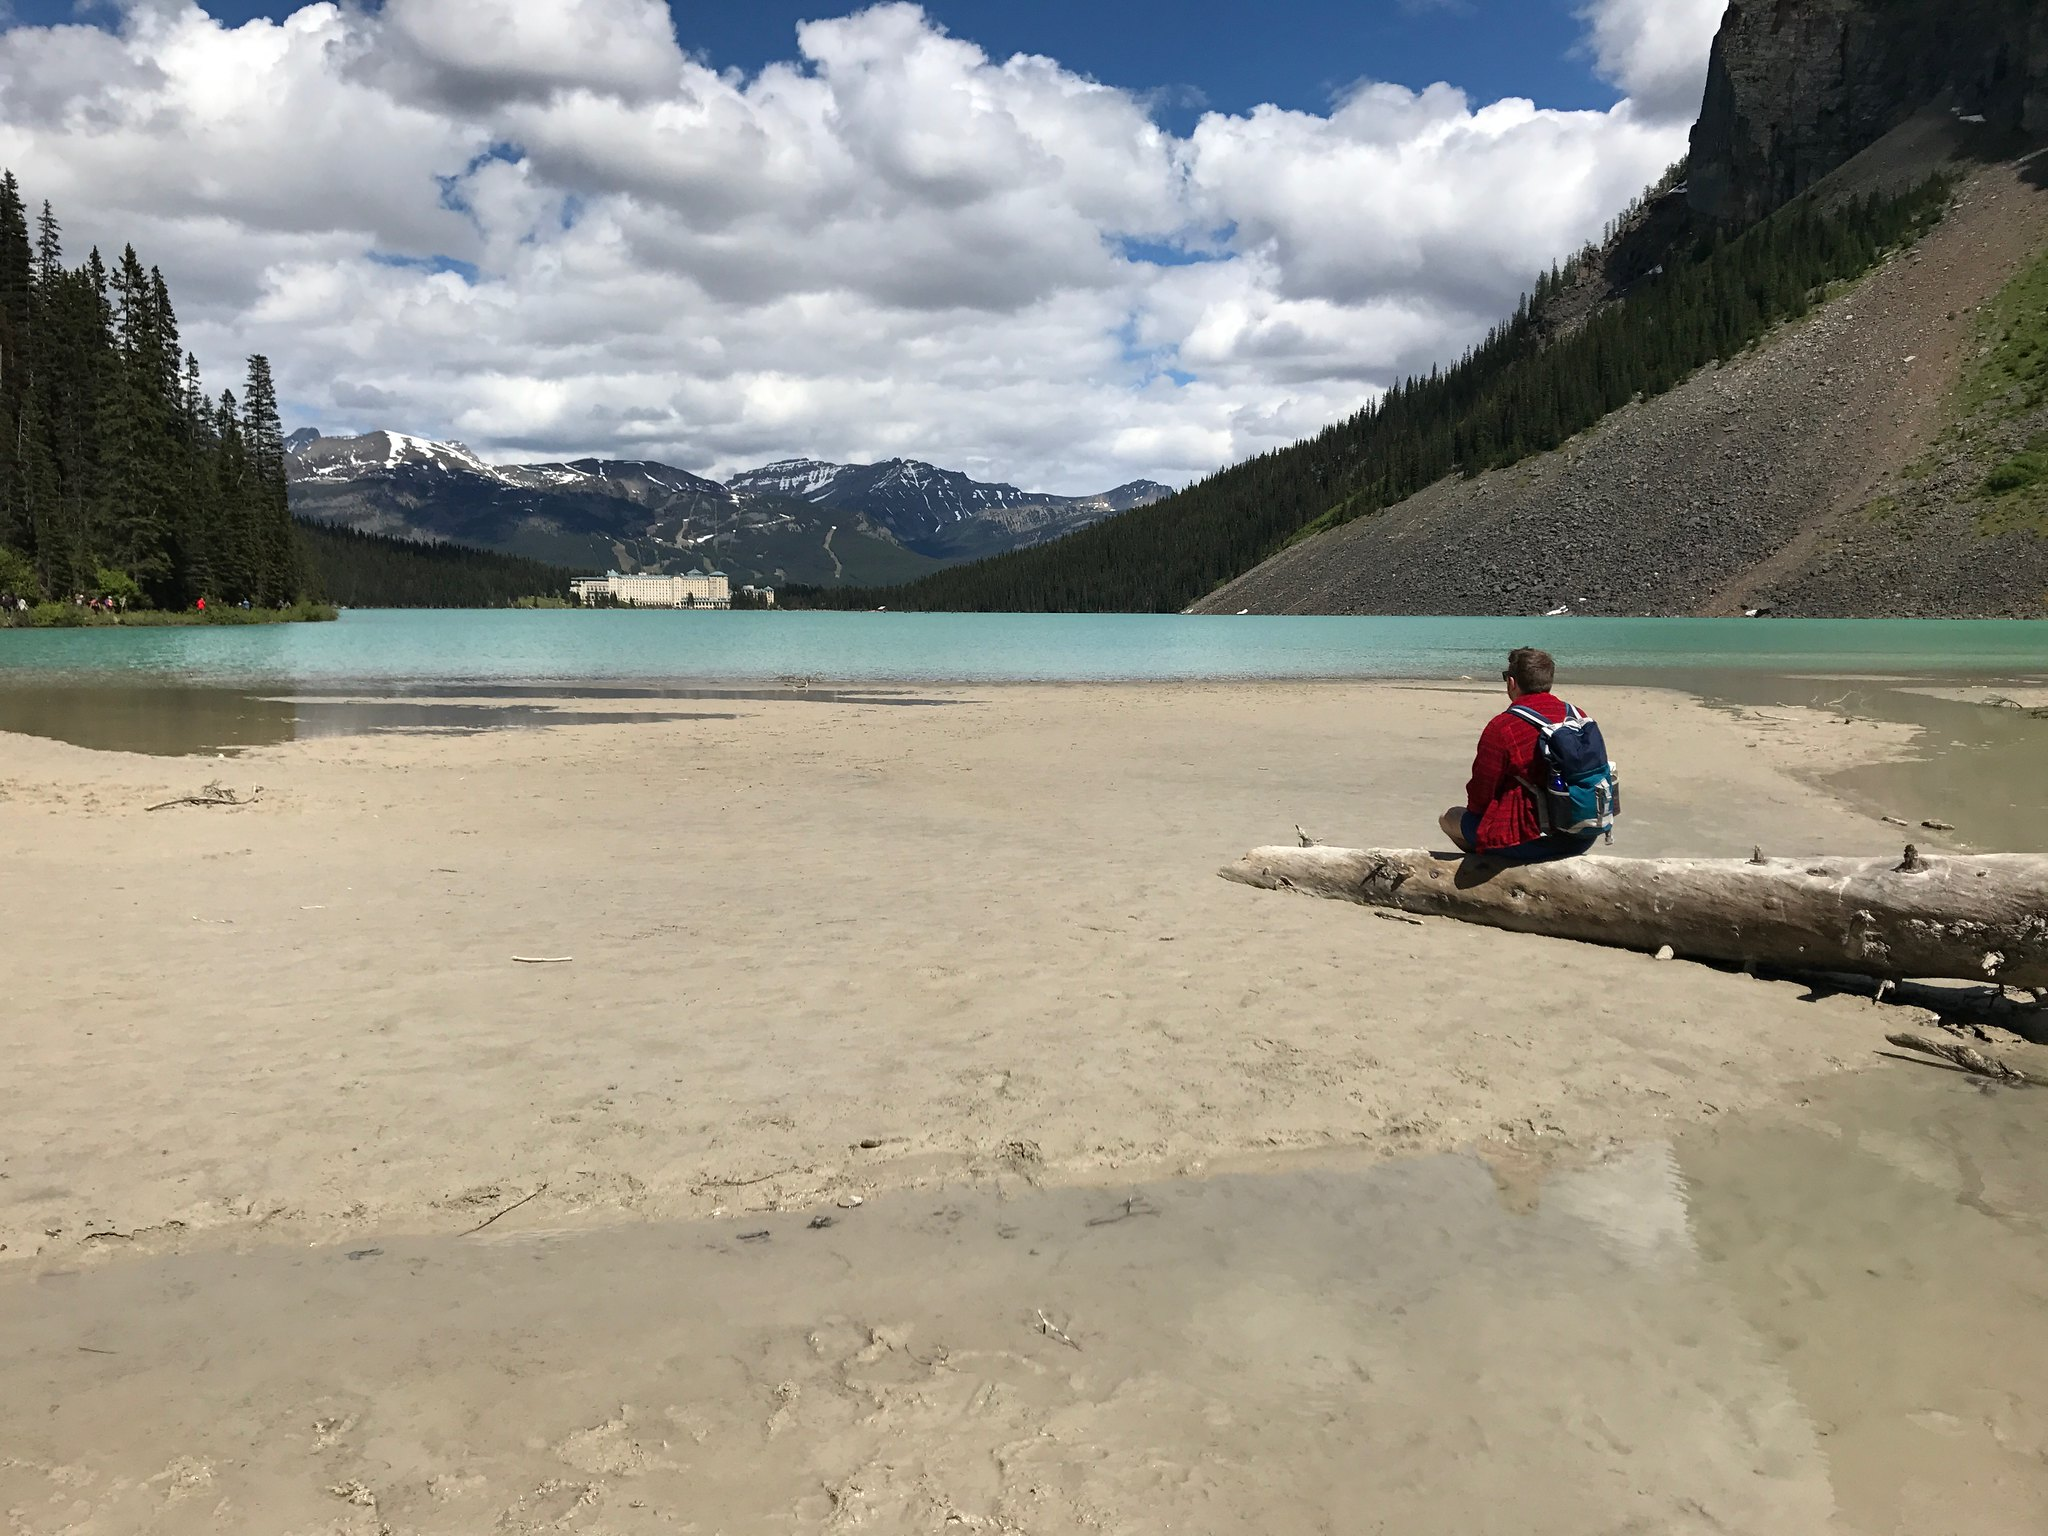 Beach at the end of Lake Louise